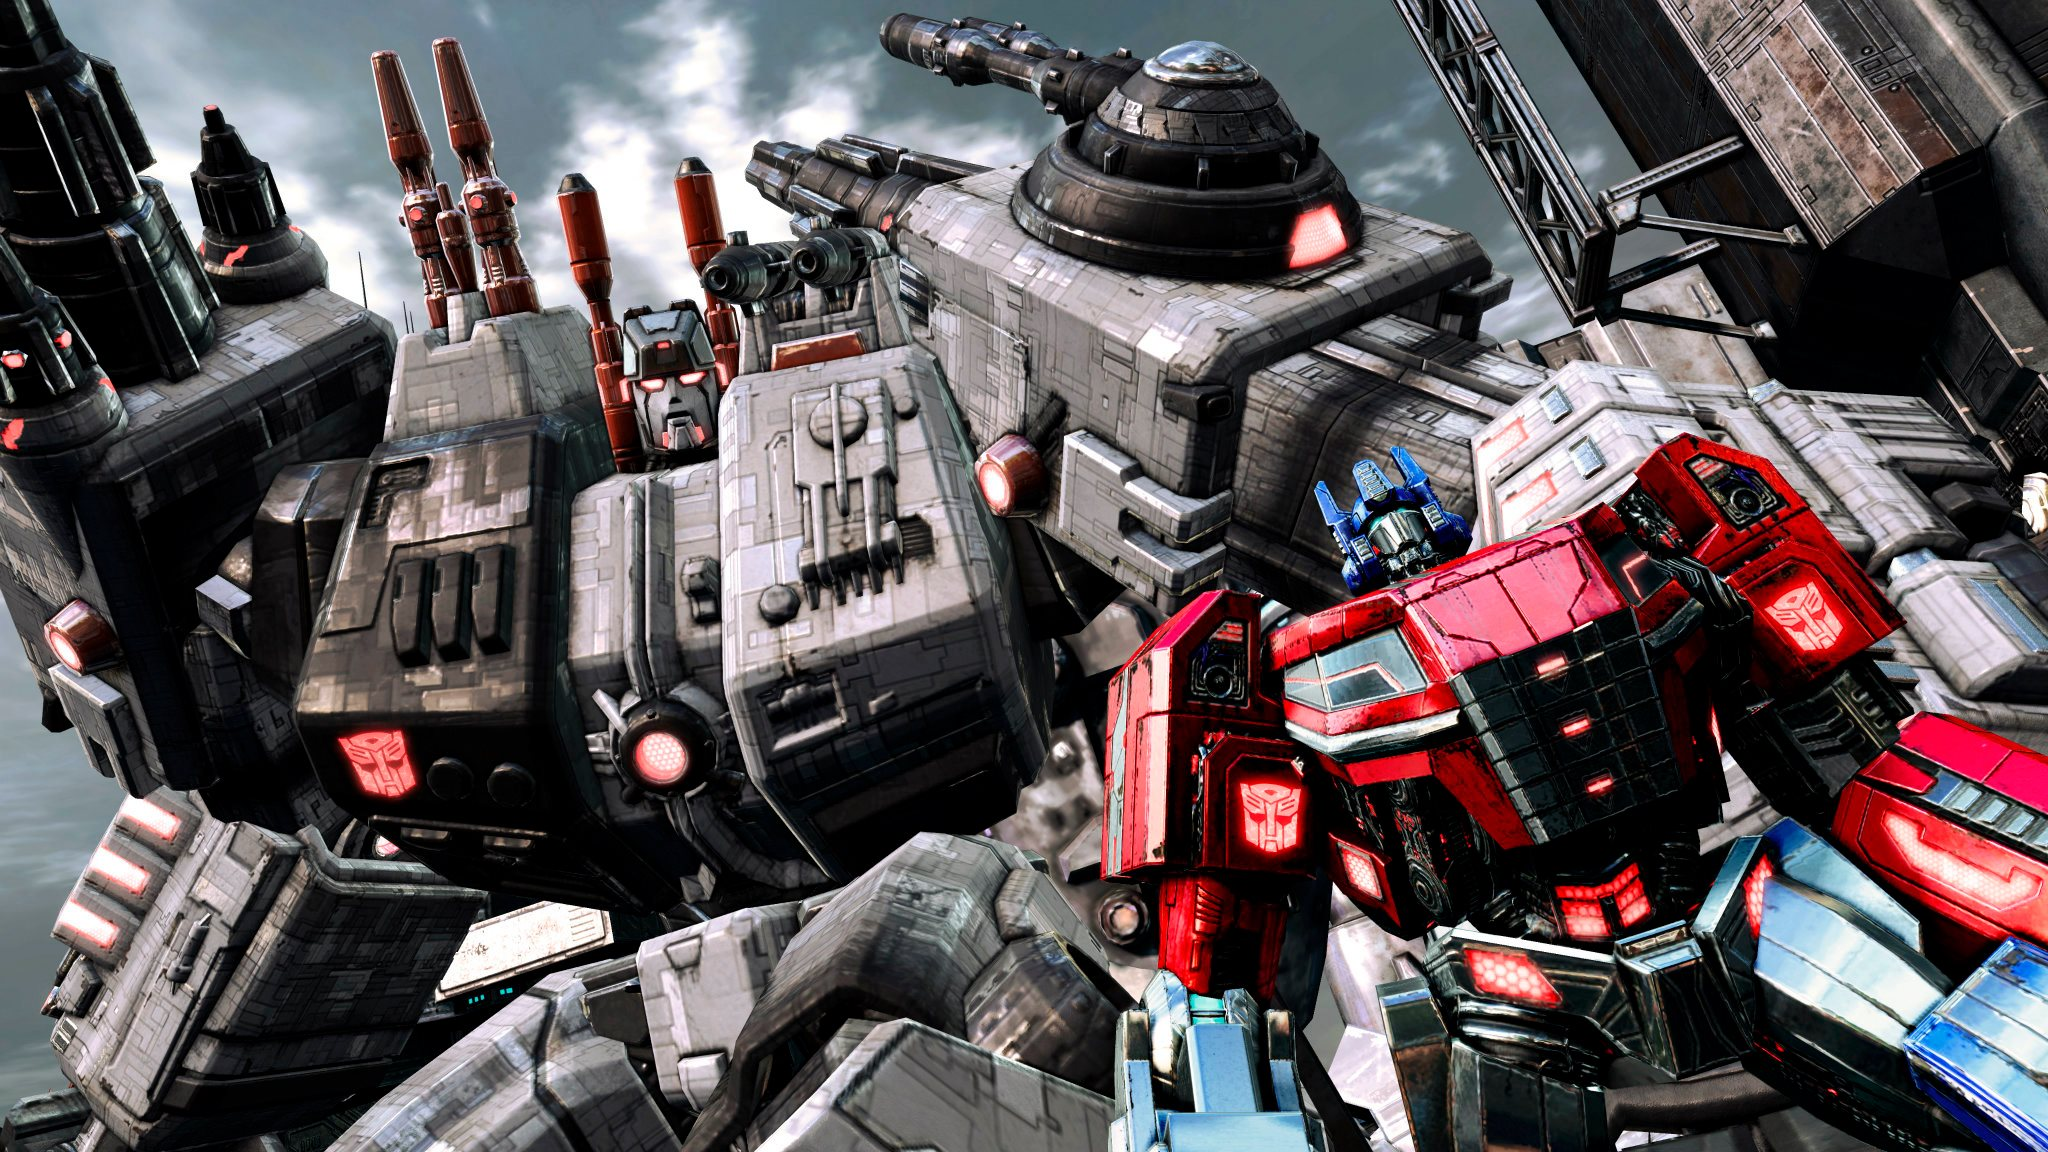 Fall Of Cybertron Wallpaper Hd Transformers Fall Of Cybertron Full Hd Wallpaper And